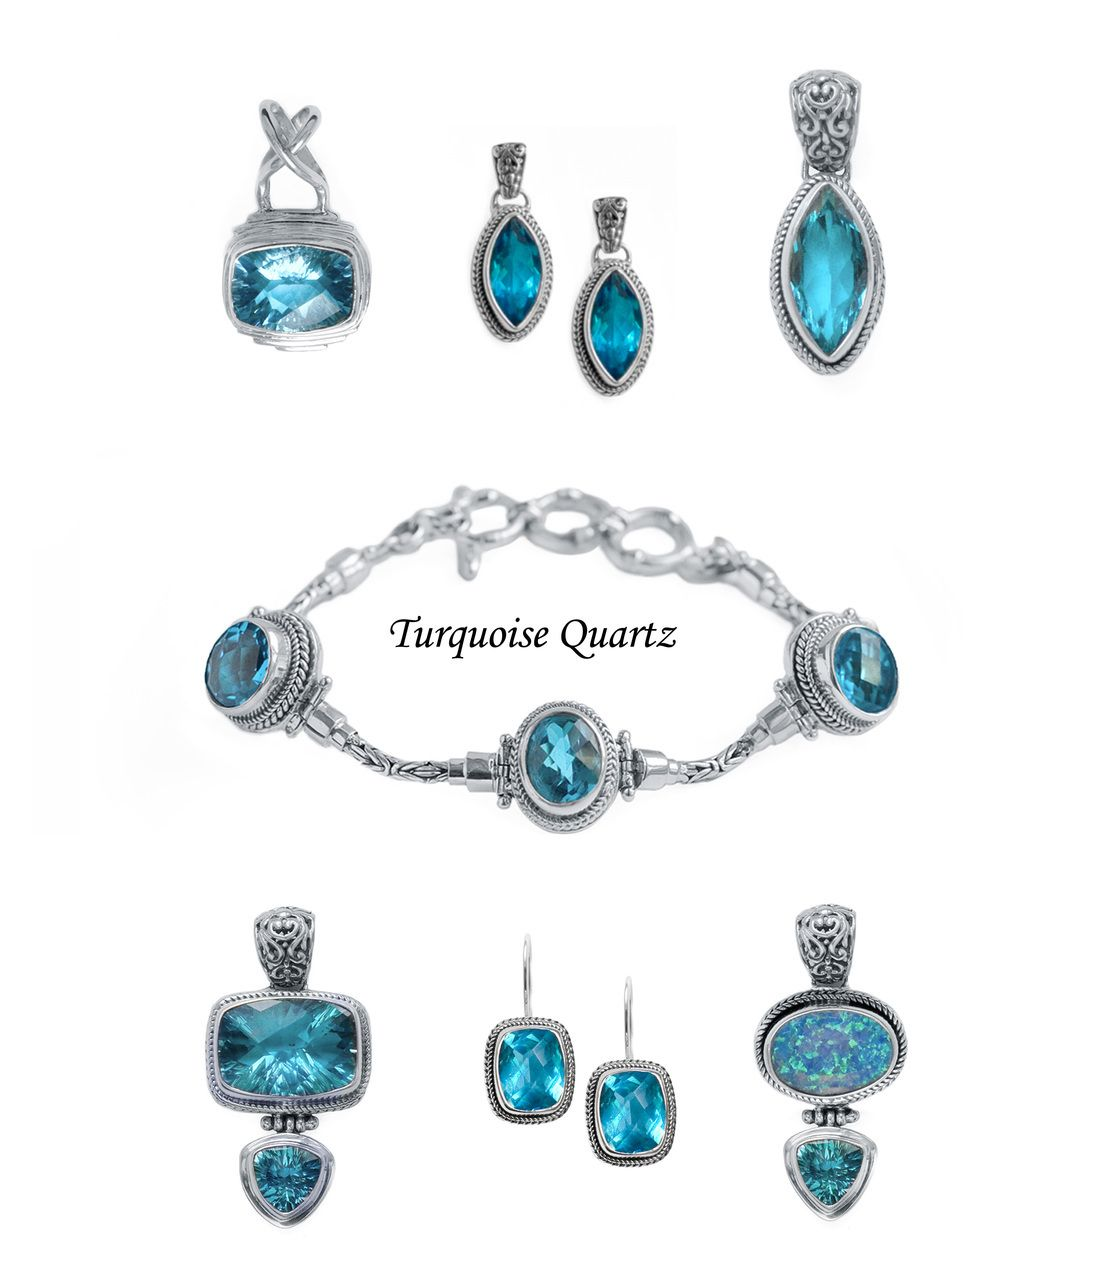 Turquoise quartz and sterling silver jewelry